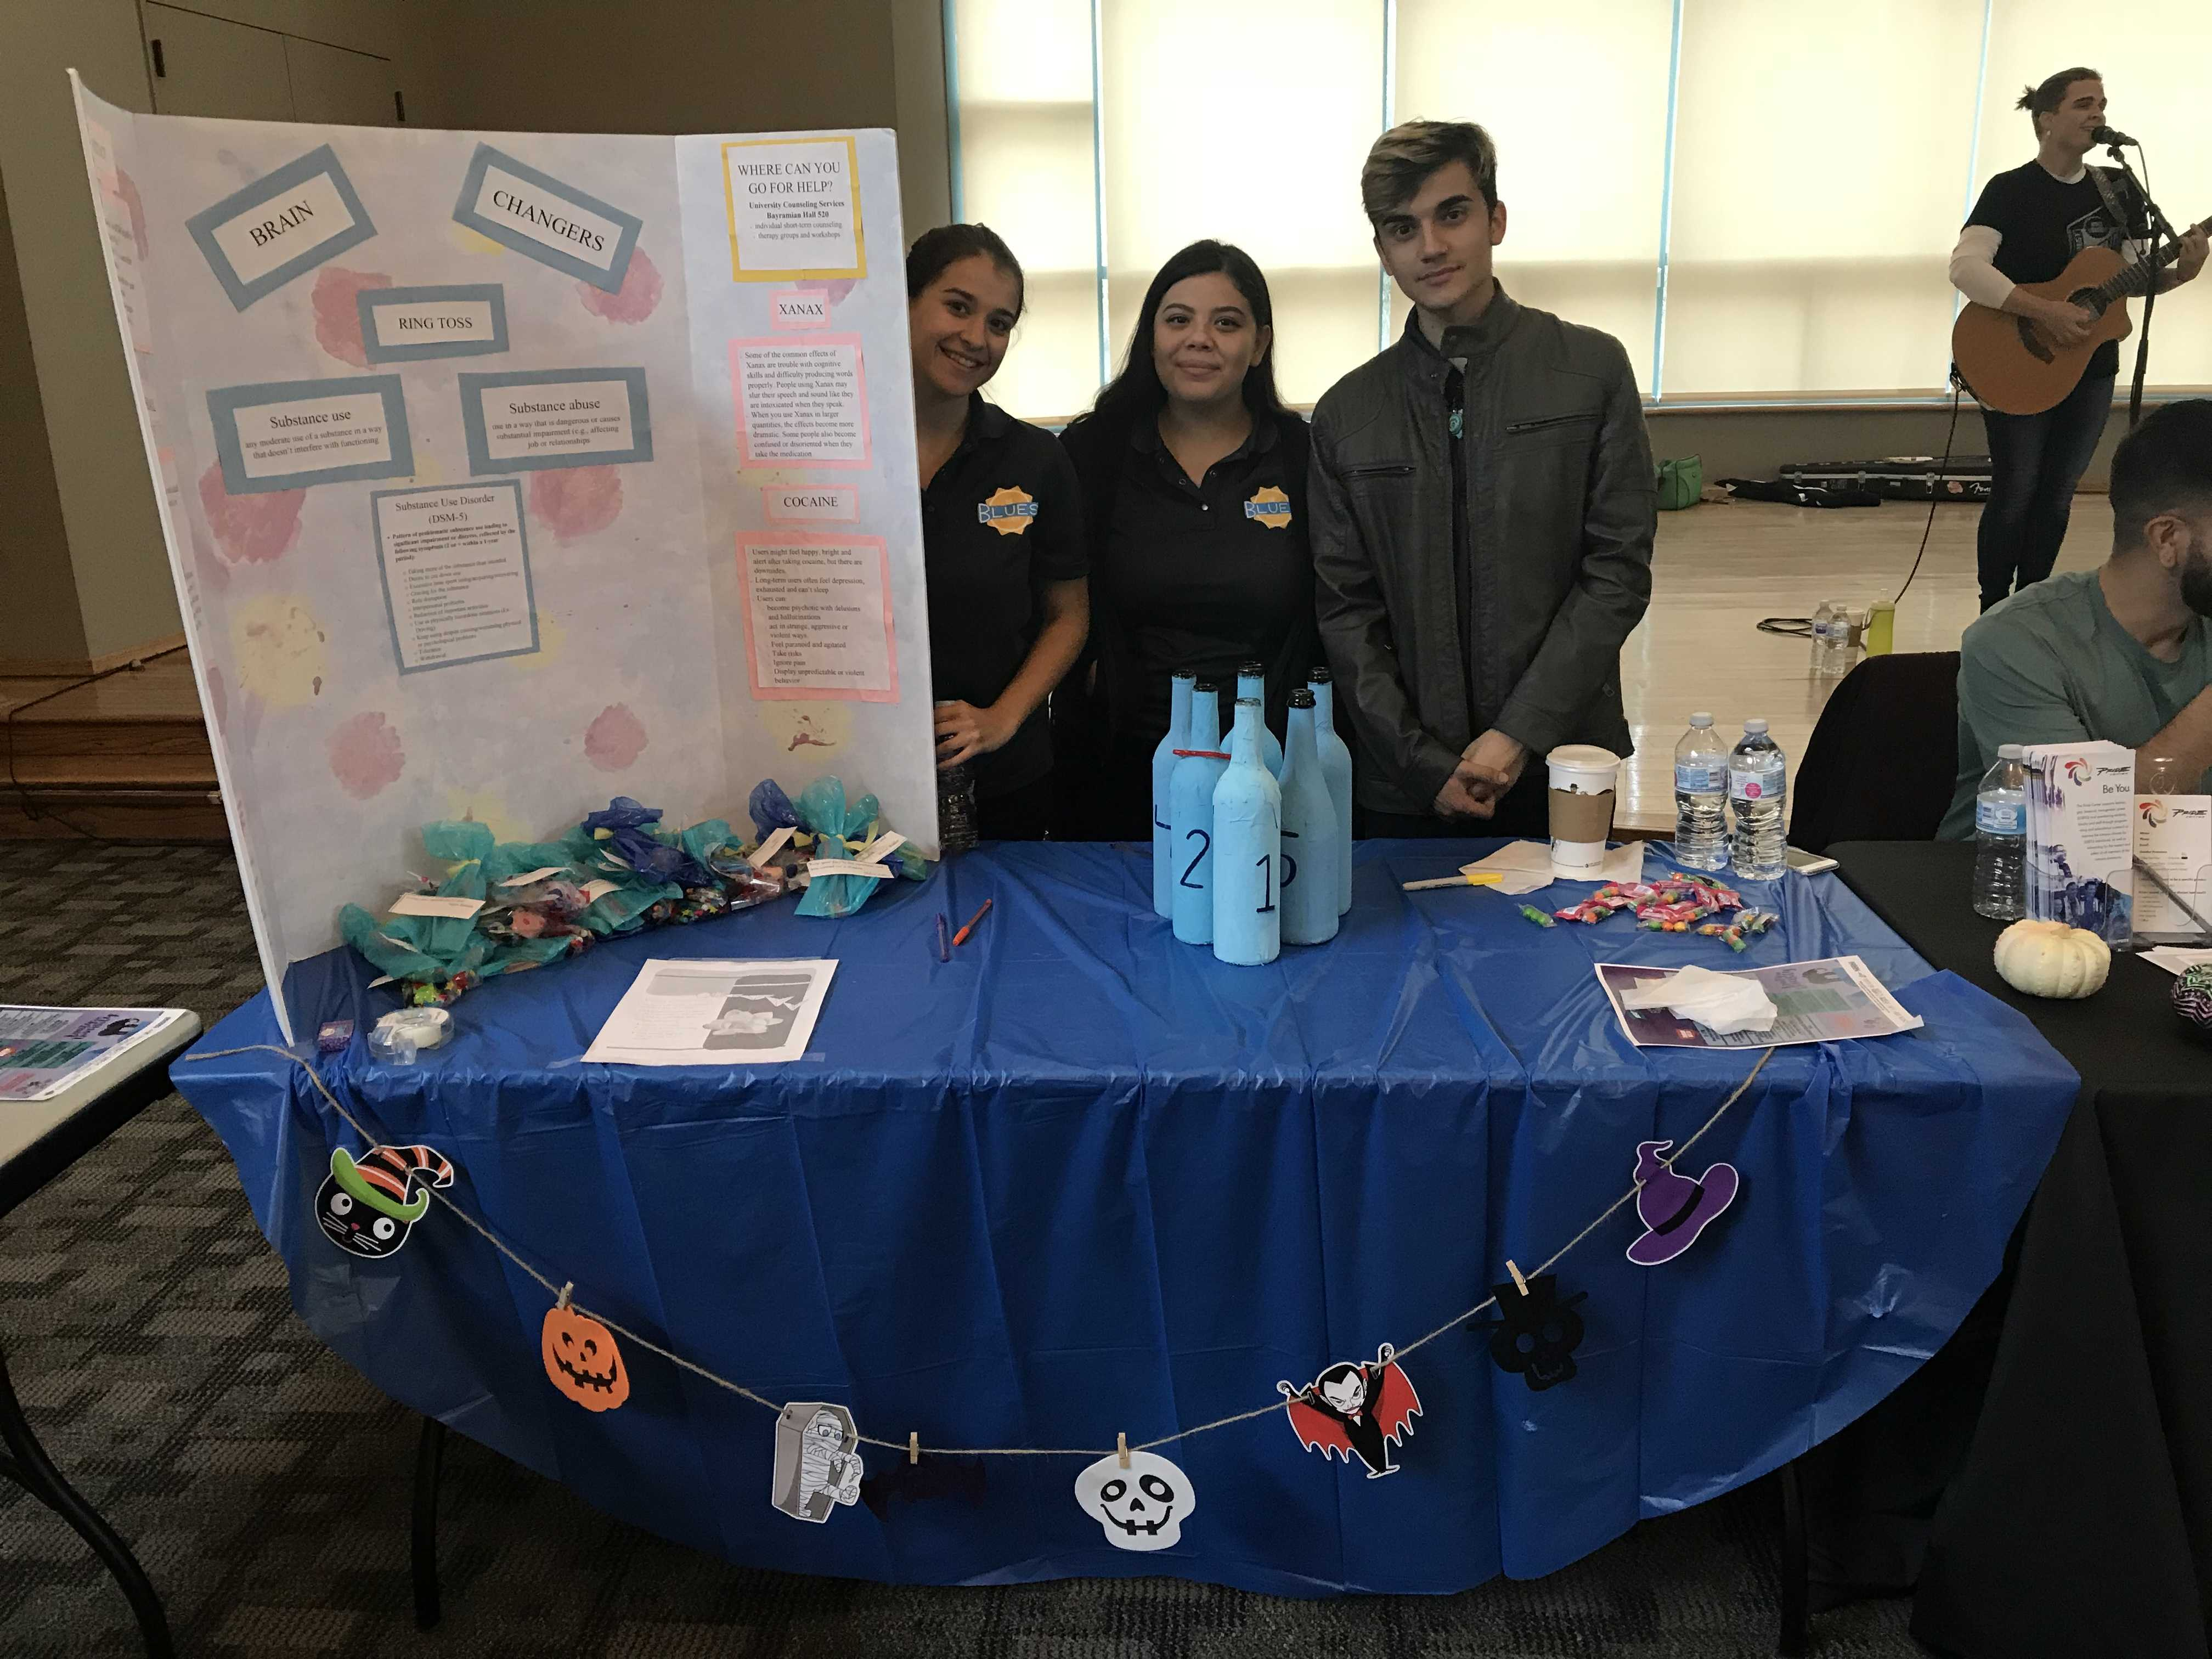 Left to right: Alyssa Peter, Celeste Mar, and Walter Linares giving the community information on brain chargers like substance abuse. Photo credit: Nicole Merino